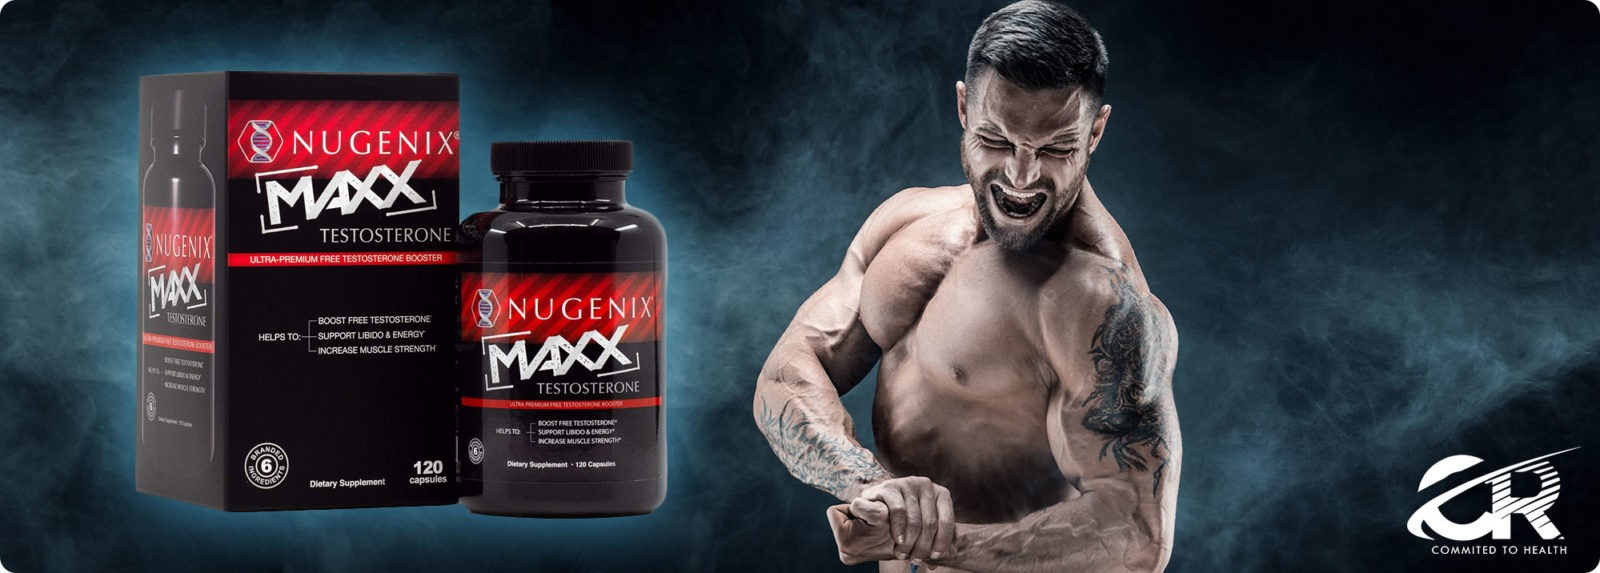 Is Nugenix Maxx Legal steroid?